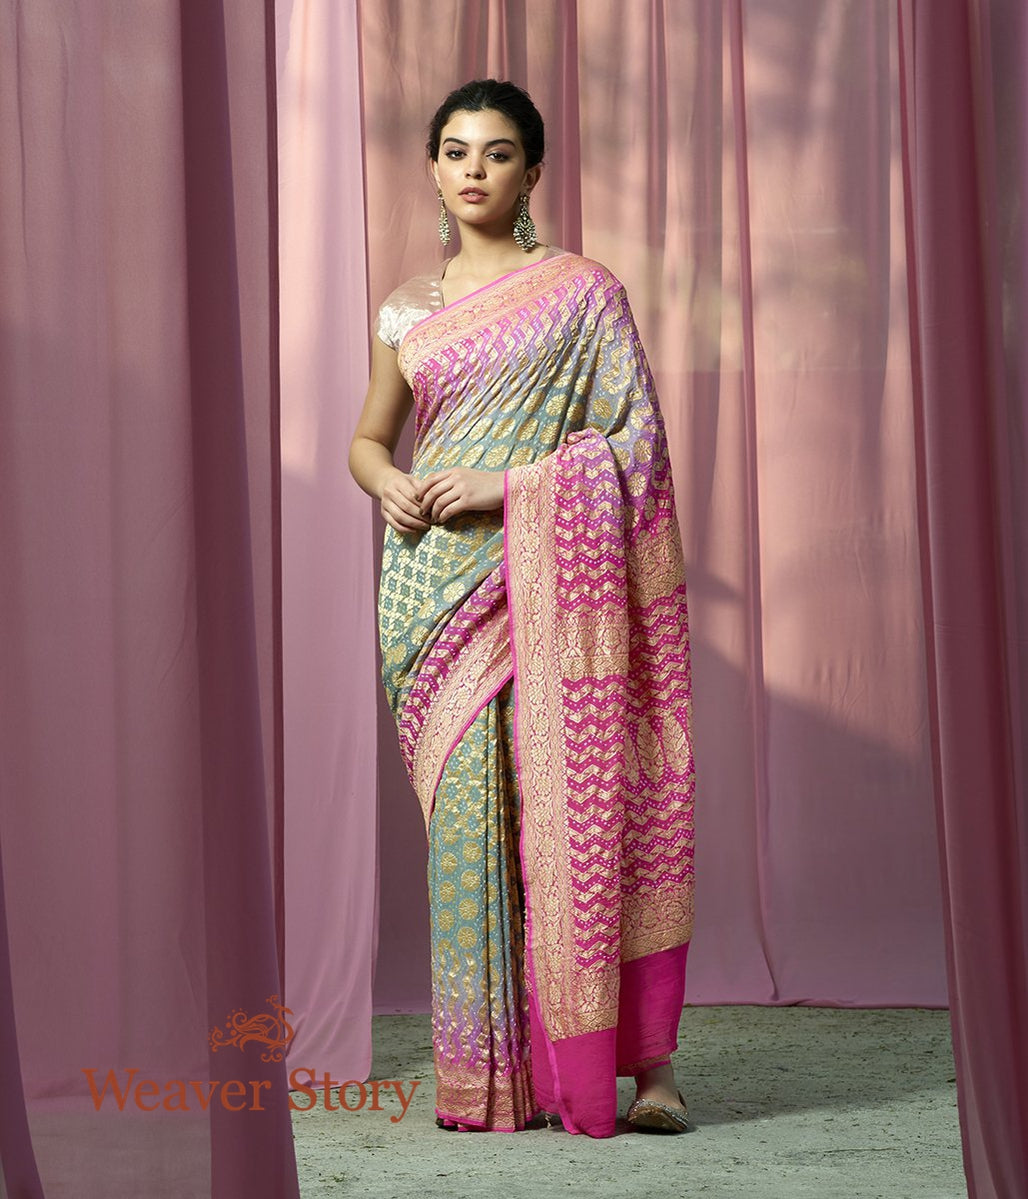 Handwoven Pink and Green Shaded Banarasi Bandhej Saree